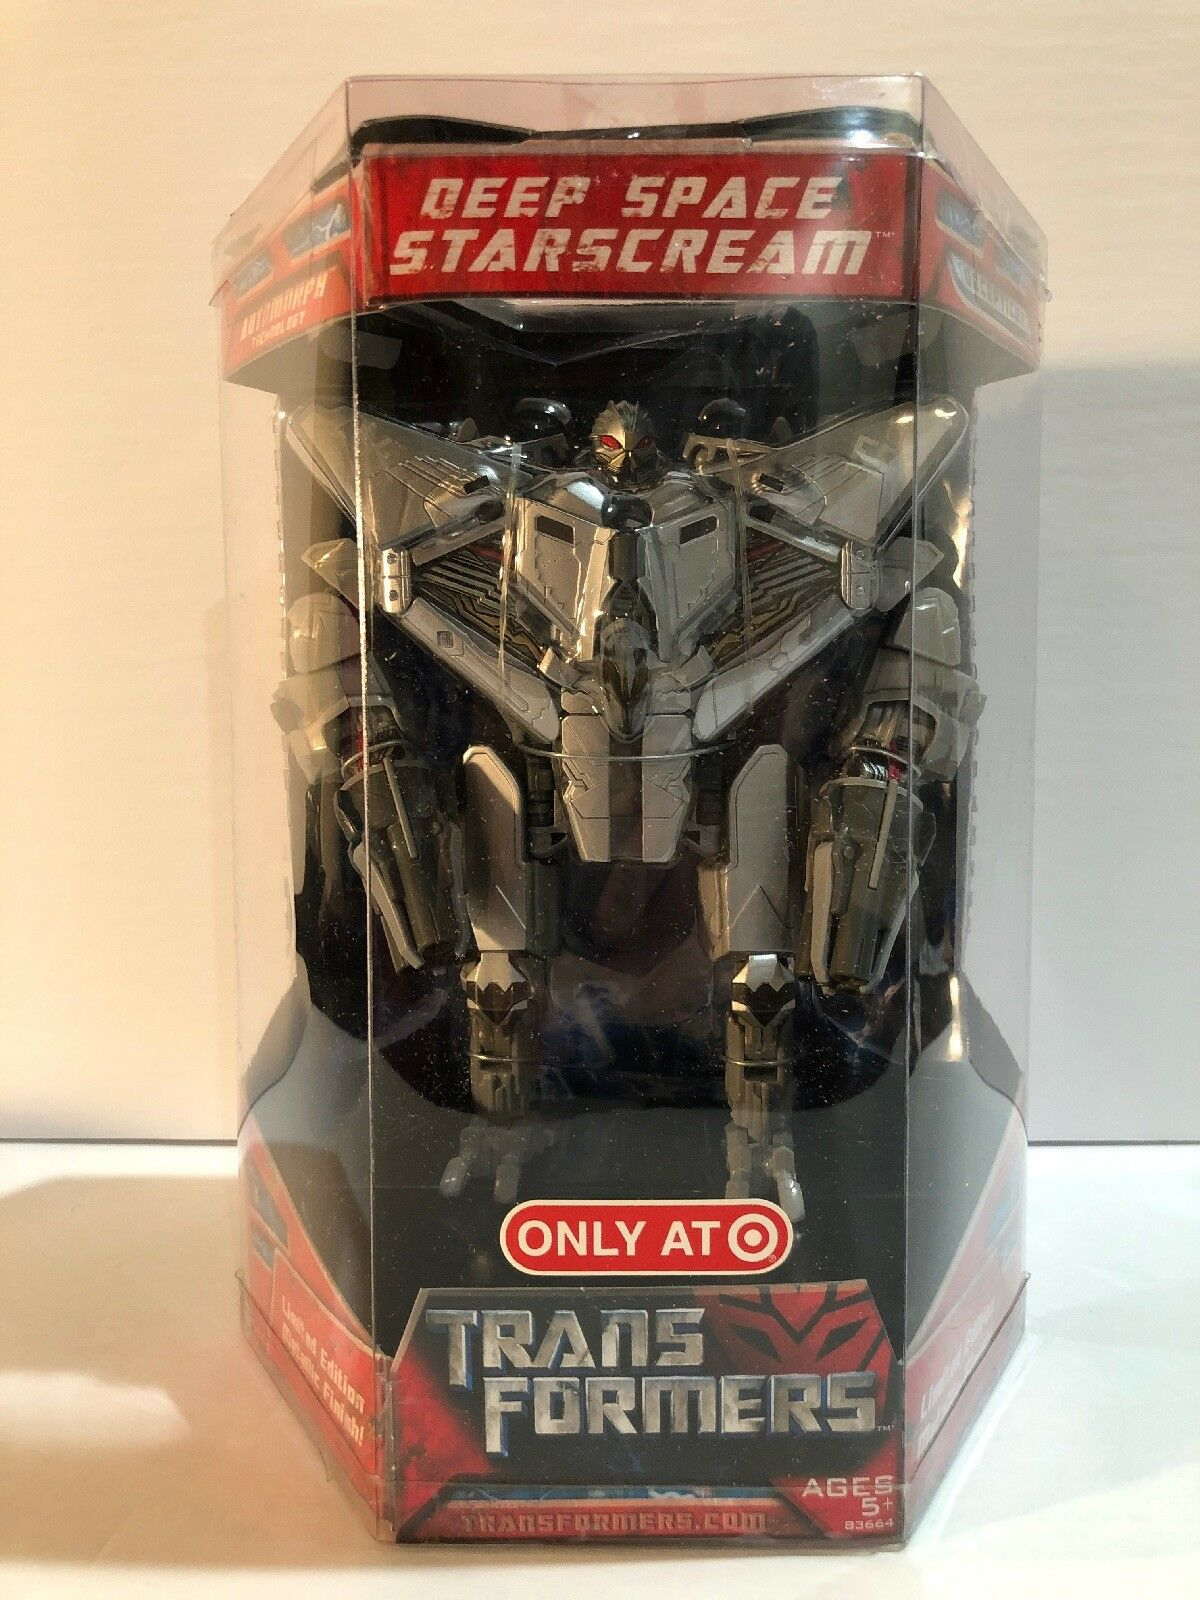 Hasbro Transformers Decepticon-Deep Space Estrellascream-Target Exclusive